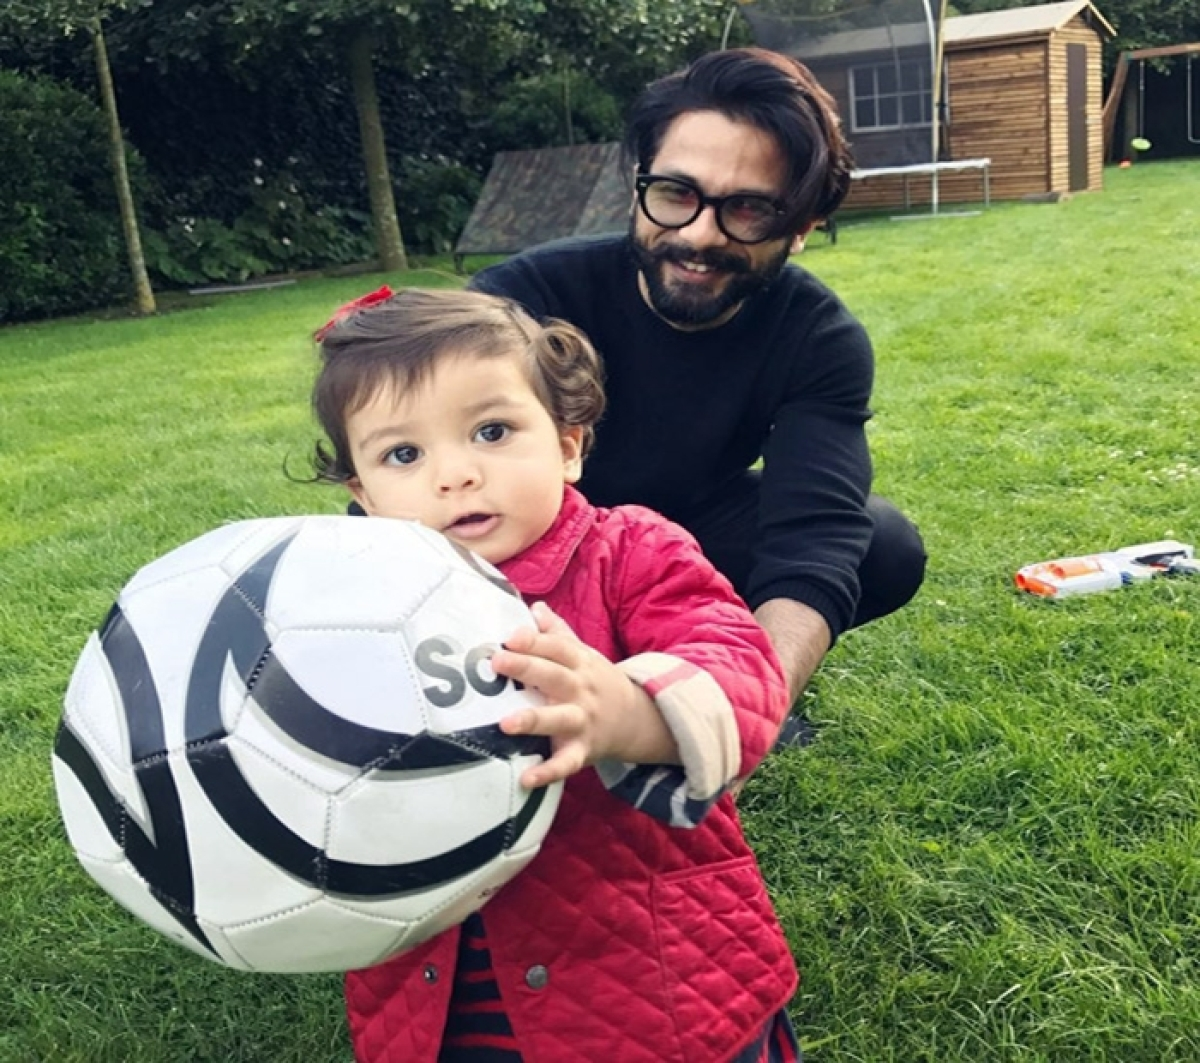 Adorable: Father-daughter duo Shahid Kapoor- Misha Kapoor enjoying their play time